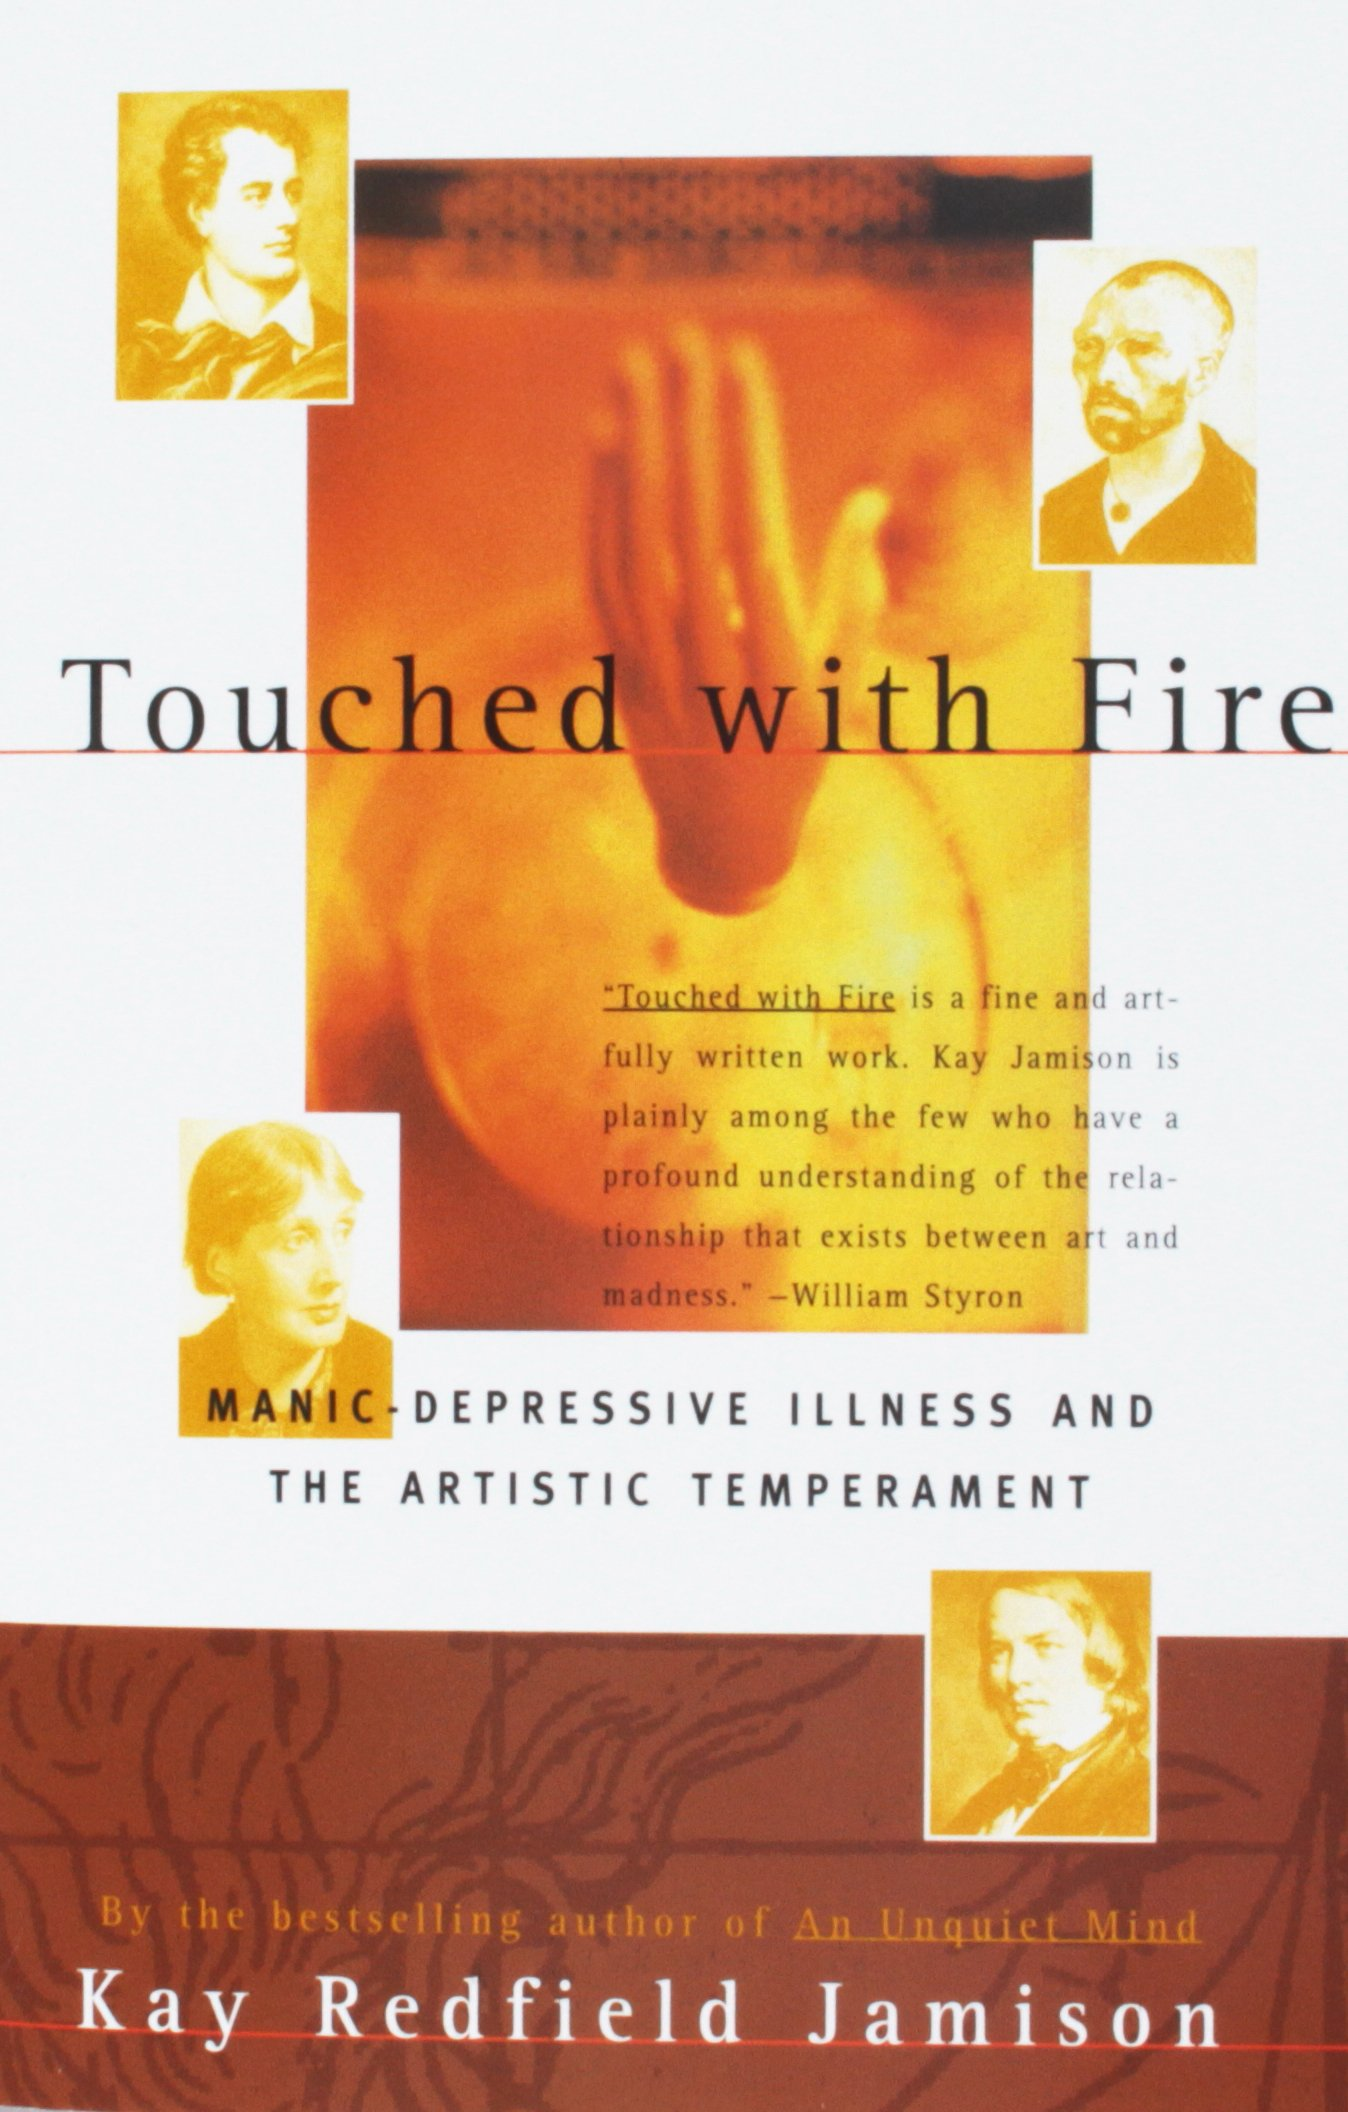 Touched With Fire: Kay Redfield Jamison: 9780684831831: Books - Amazon.ca